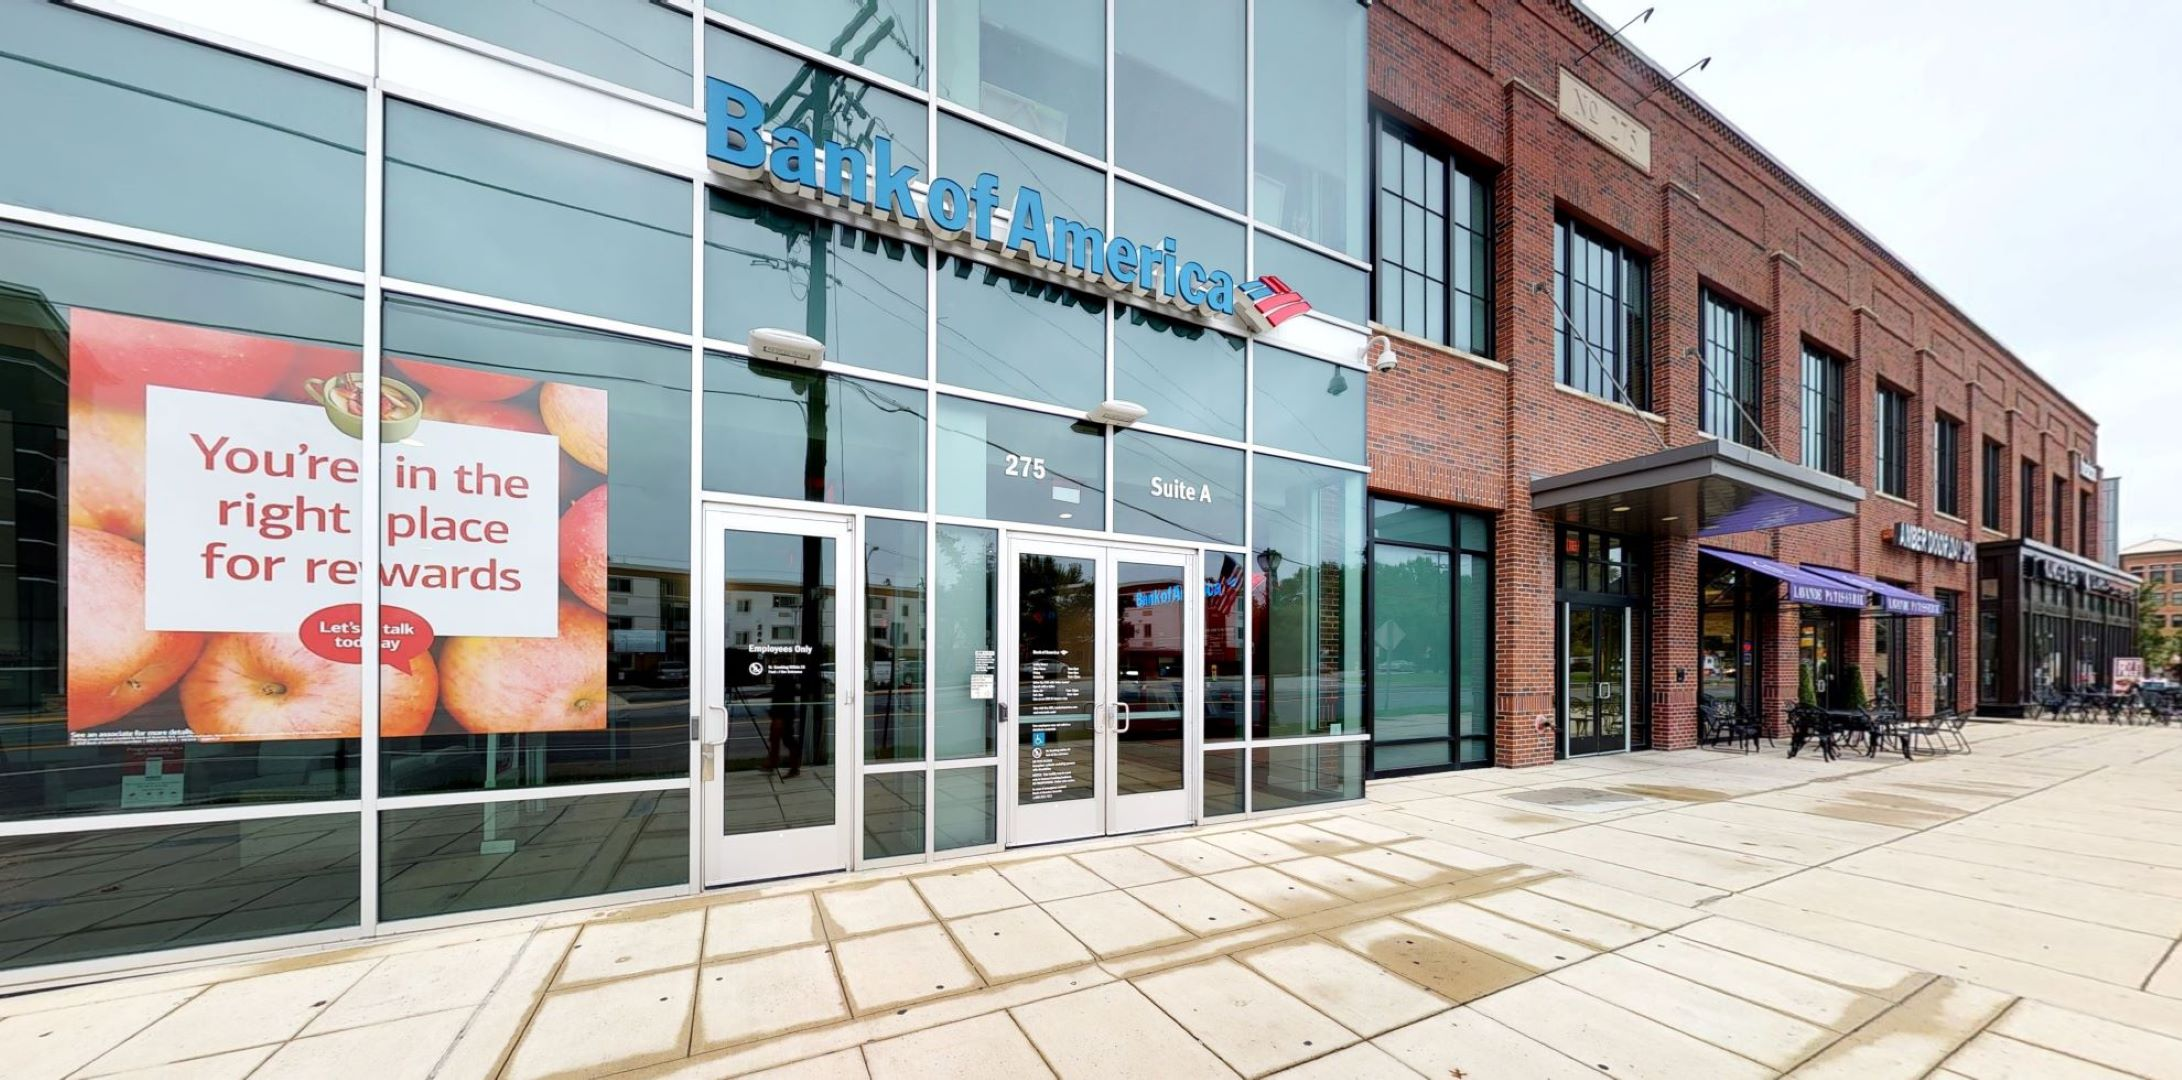 Bank of America financial center with drive-thru ATM | 275 N Washington St STE A, Rockville, MD 20850